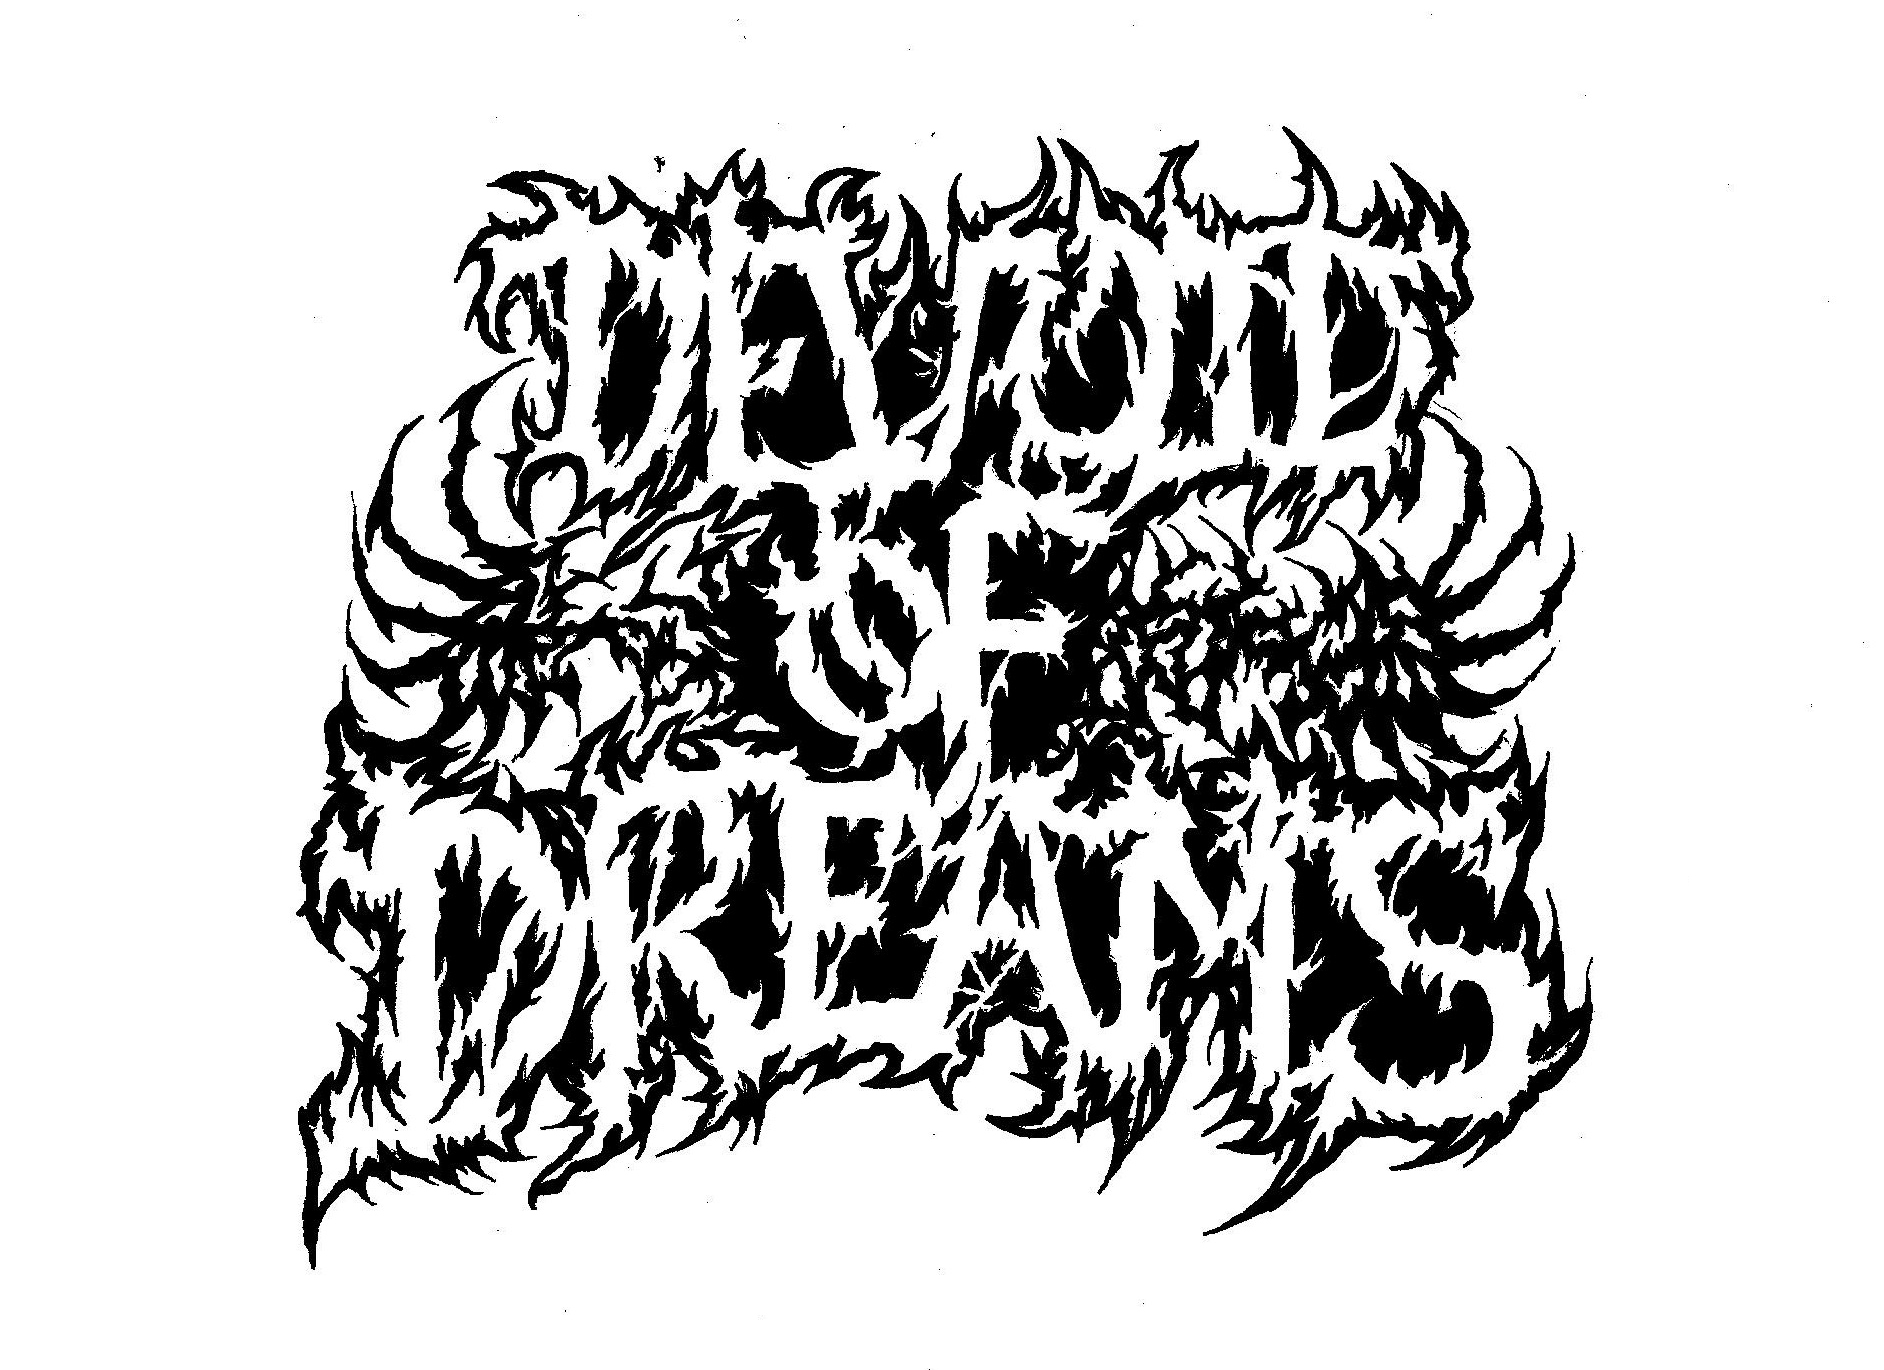 Devoid of Dreams to release new singles 'March of Chaos' and 'Where the Gods fear to tread'